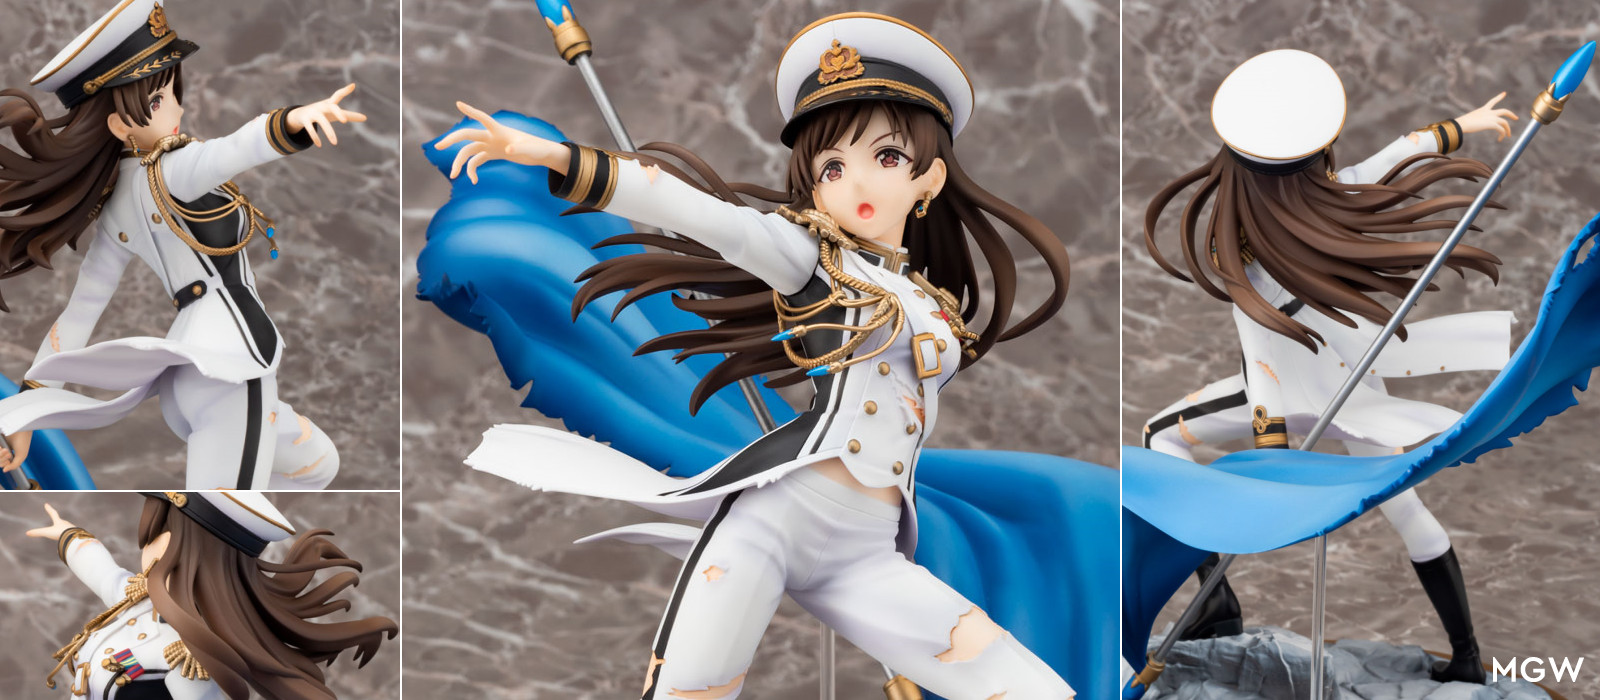 Minami Nitta Seizon Honnou Valkyria ver. by AmiAmi from THE IDOLM@STER CINDERELLA GIRLS